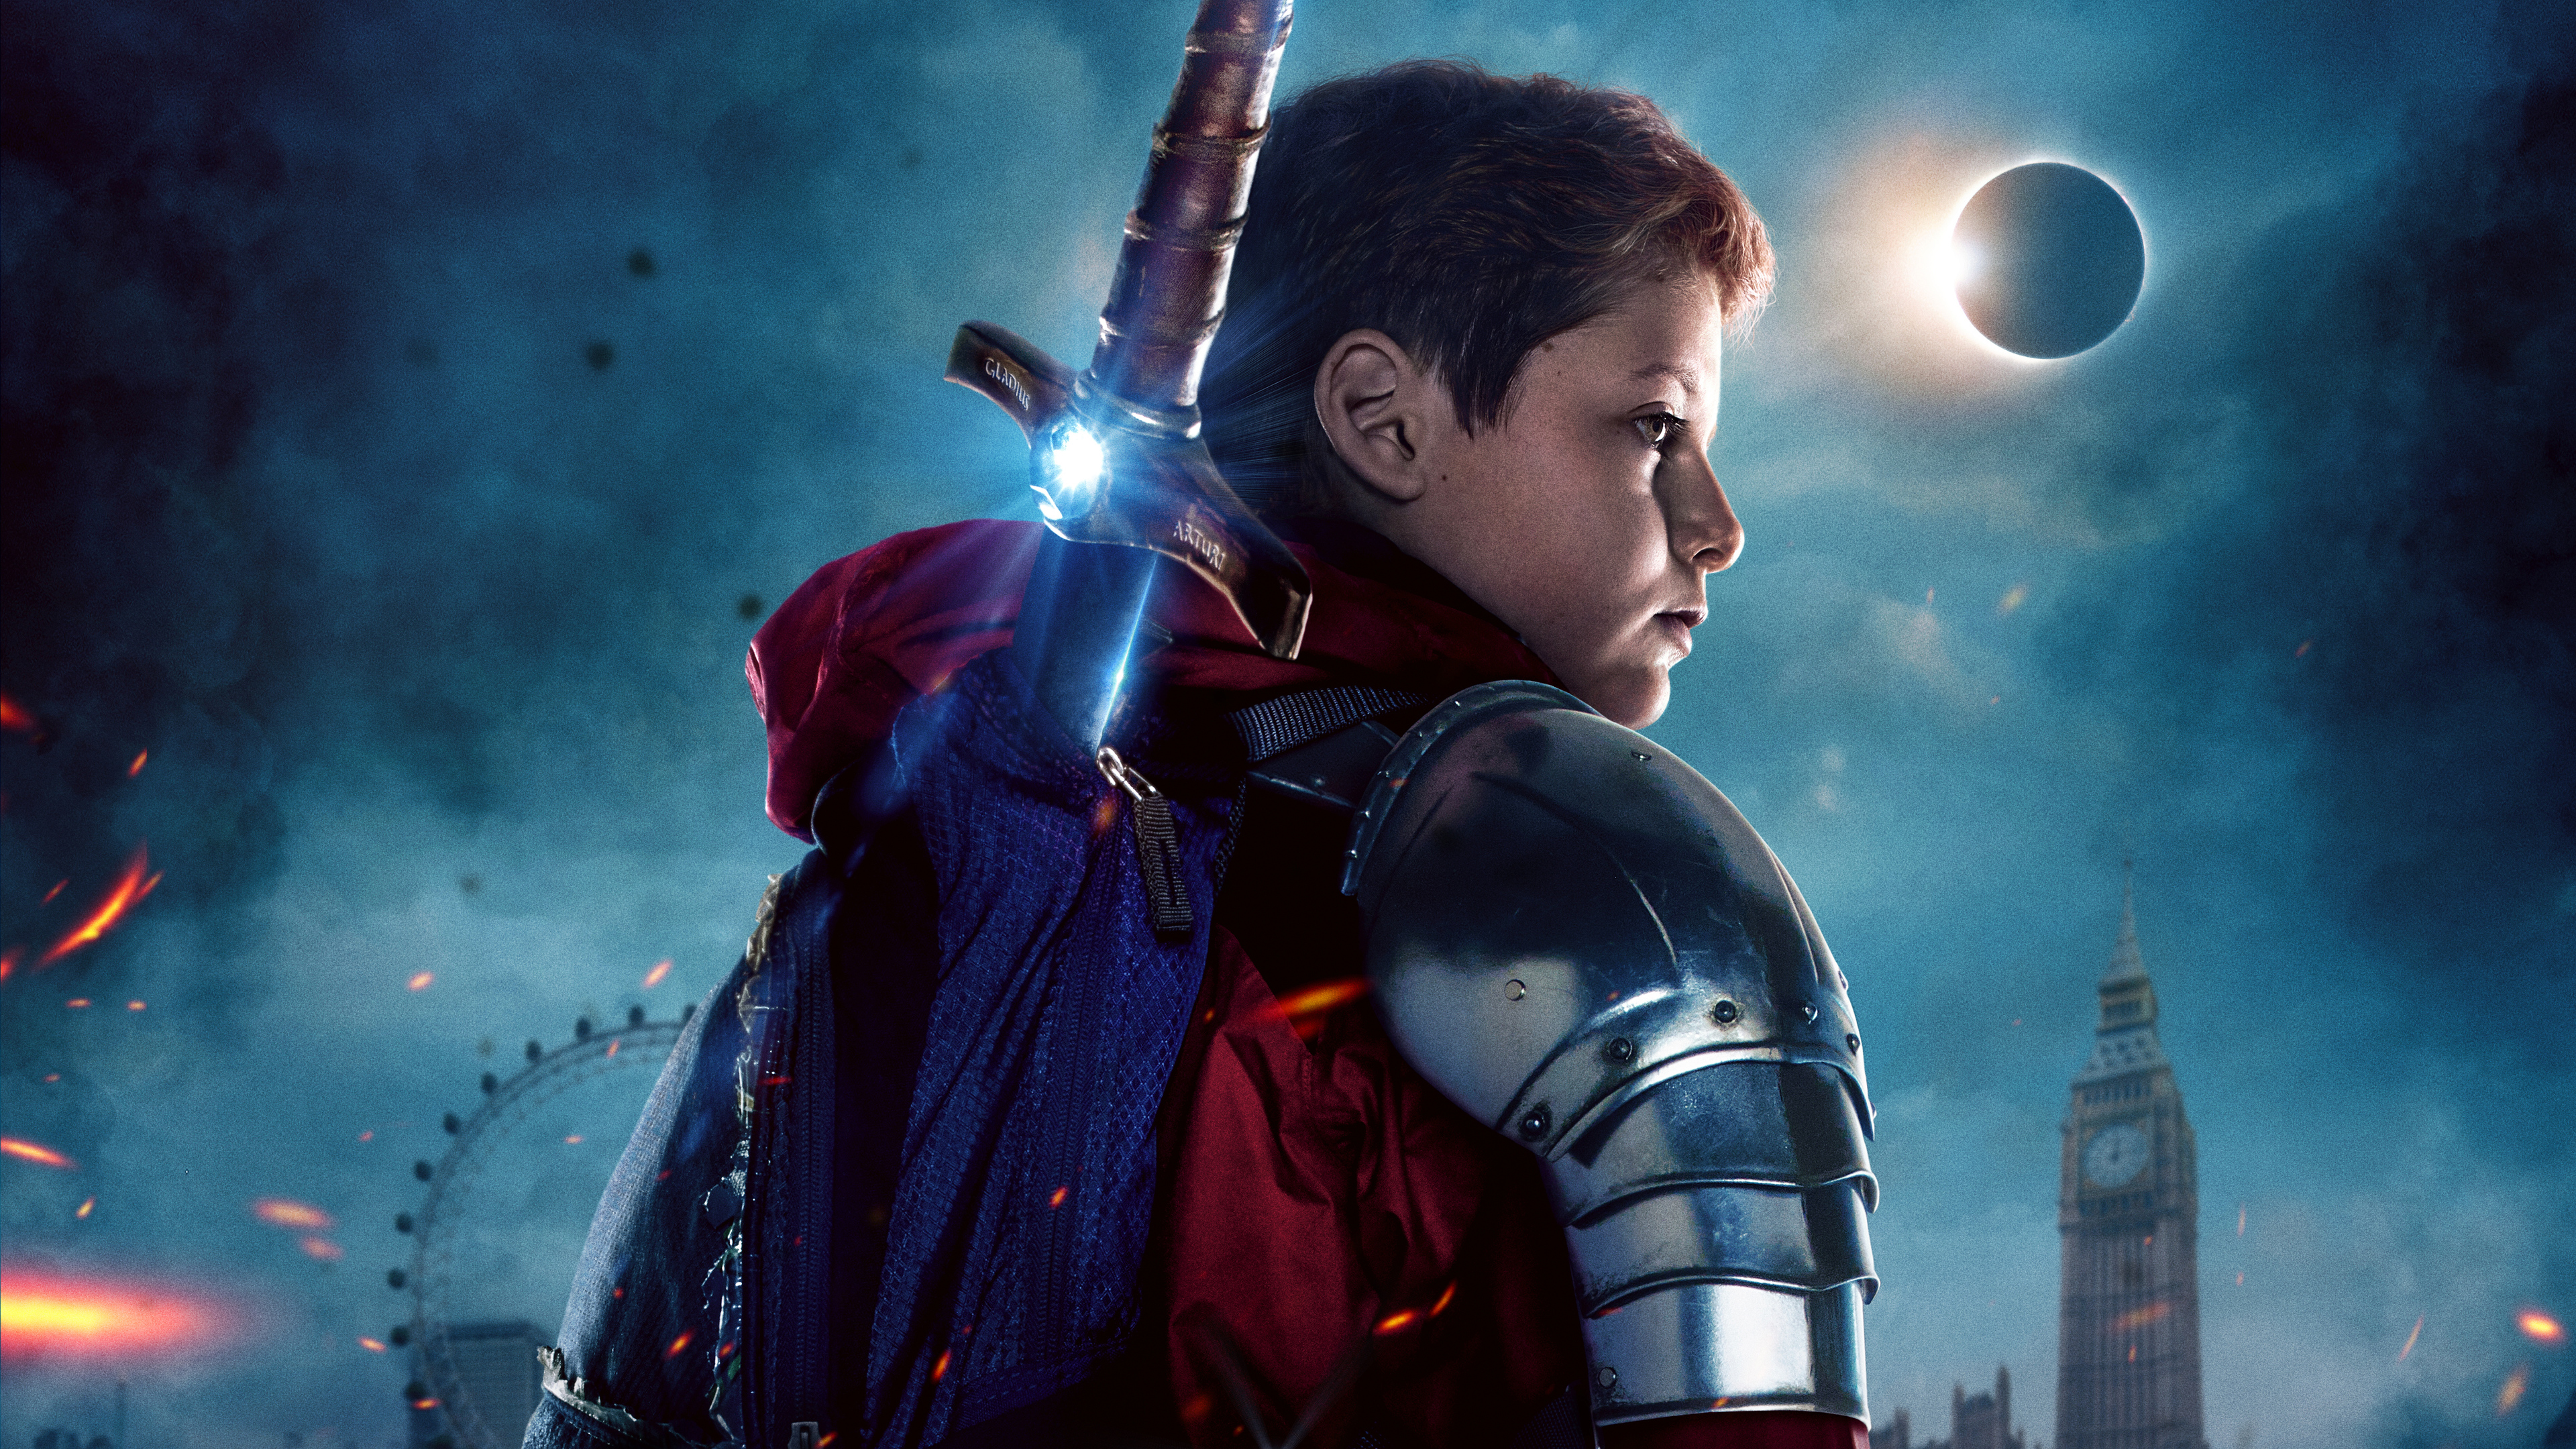 the kid who would be king 2019 5k movie 1541719440 - The Kid Who Would Be King 2019 5k Movie - the kid who would be king wallpapers, movies wallpapers, hd-wallpapers, 5k wallpapers, 4k-wallpapers, 2019 movies wallpapers